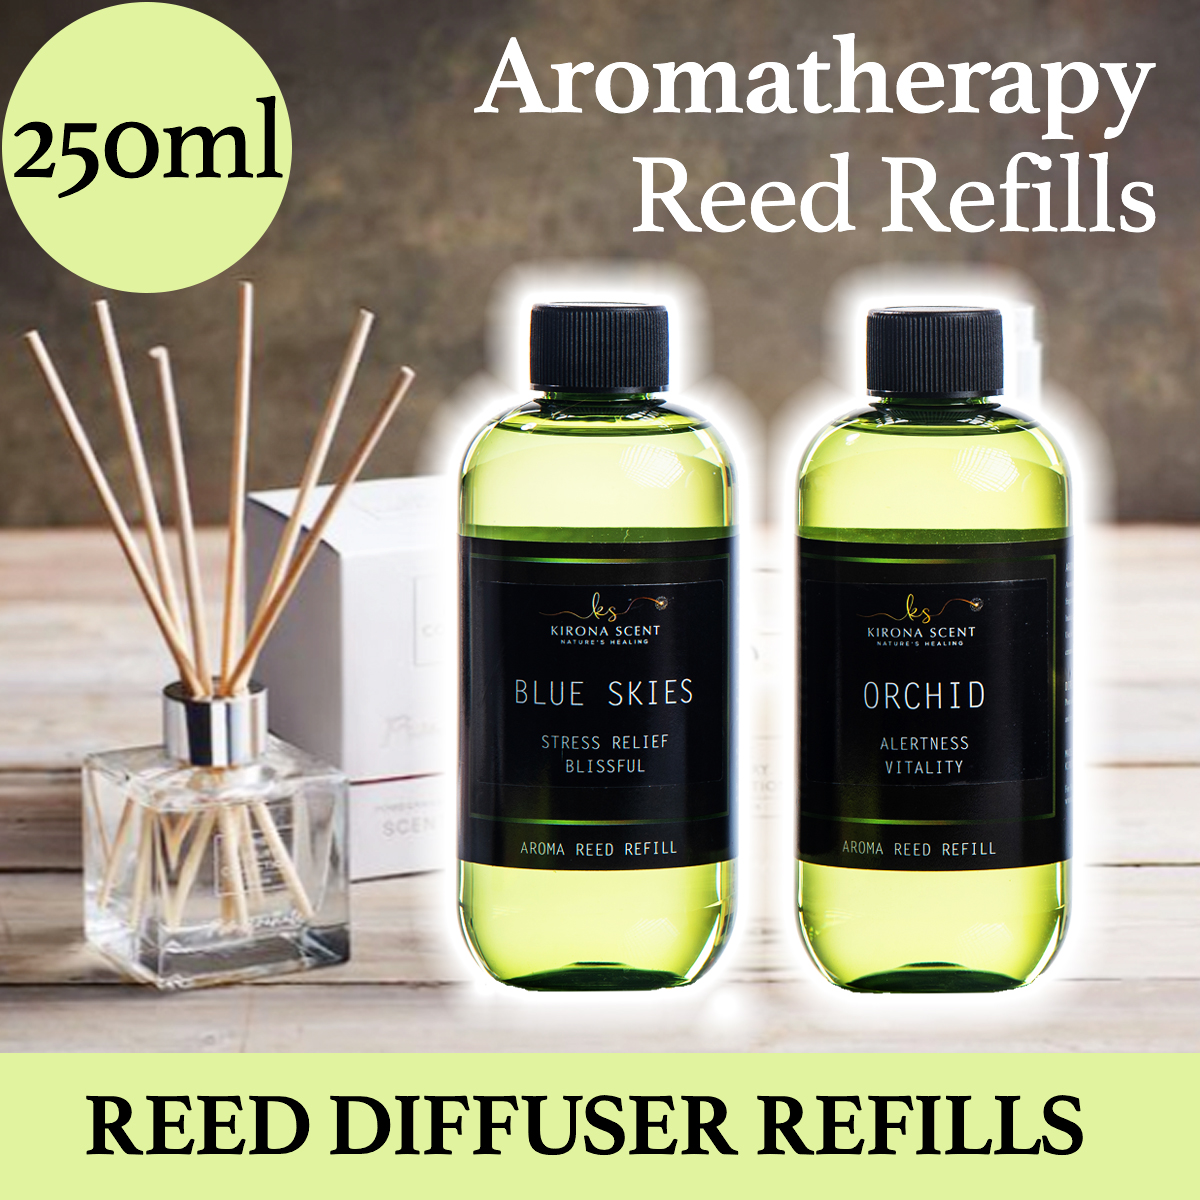 ★250ML AROMA REED REFILL★ ►FOR ALL AROMA REED DIFFUSERS◄ ★NATURAL BOTANICAL EXTRACTS★